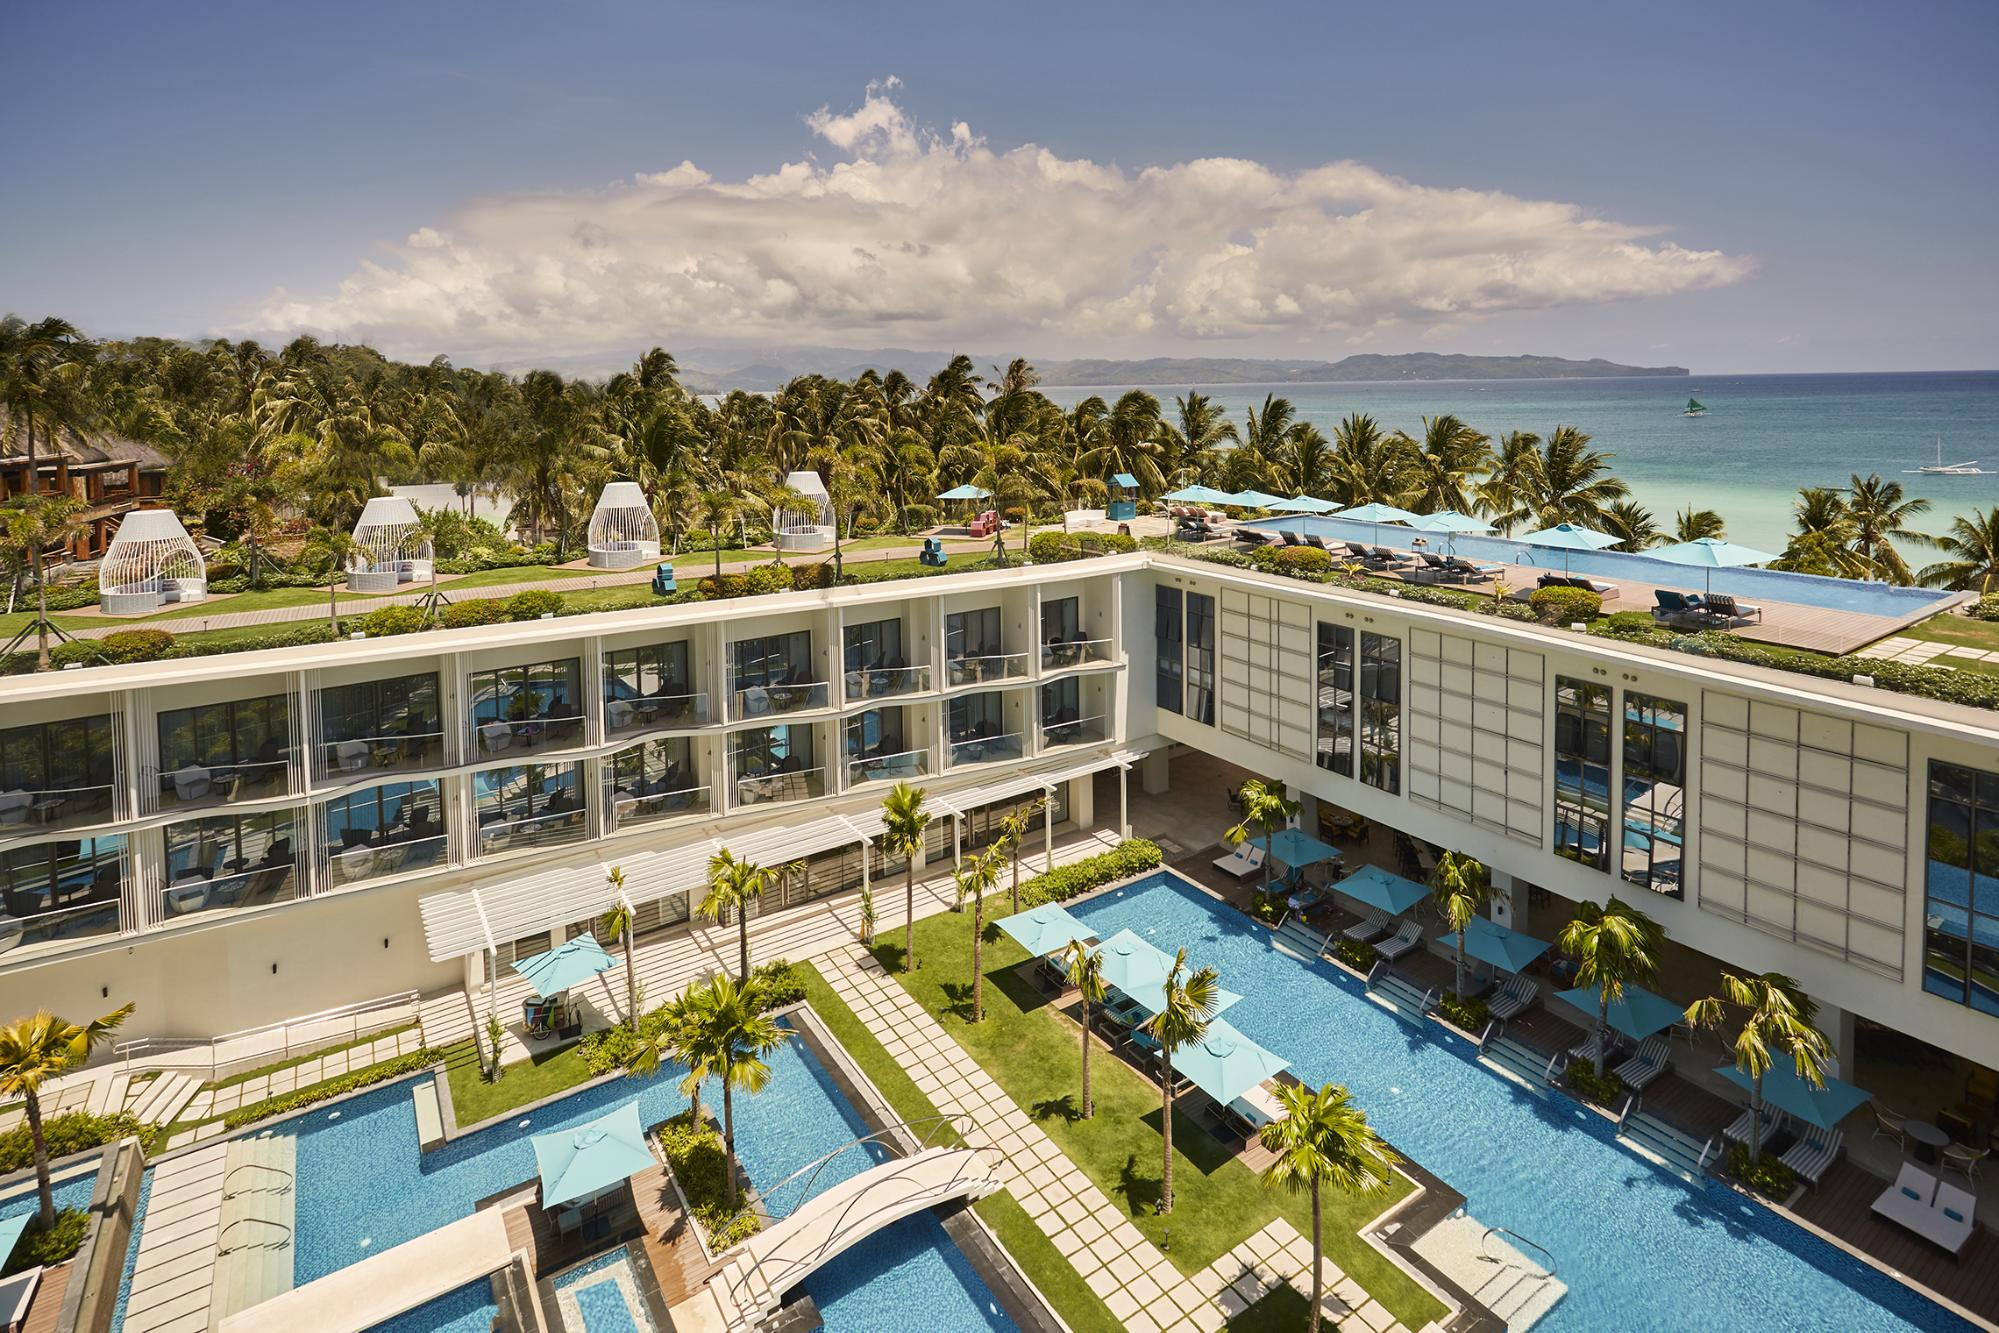 Count Down 2018 at These Hotels in the Philippines Offering Exclusive New Year Perks